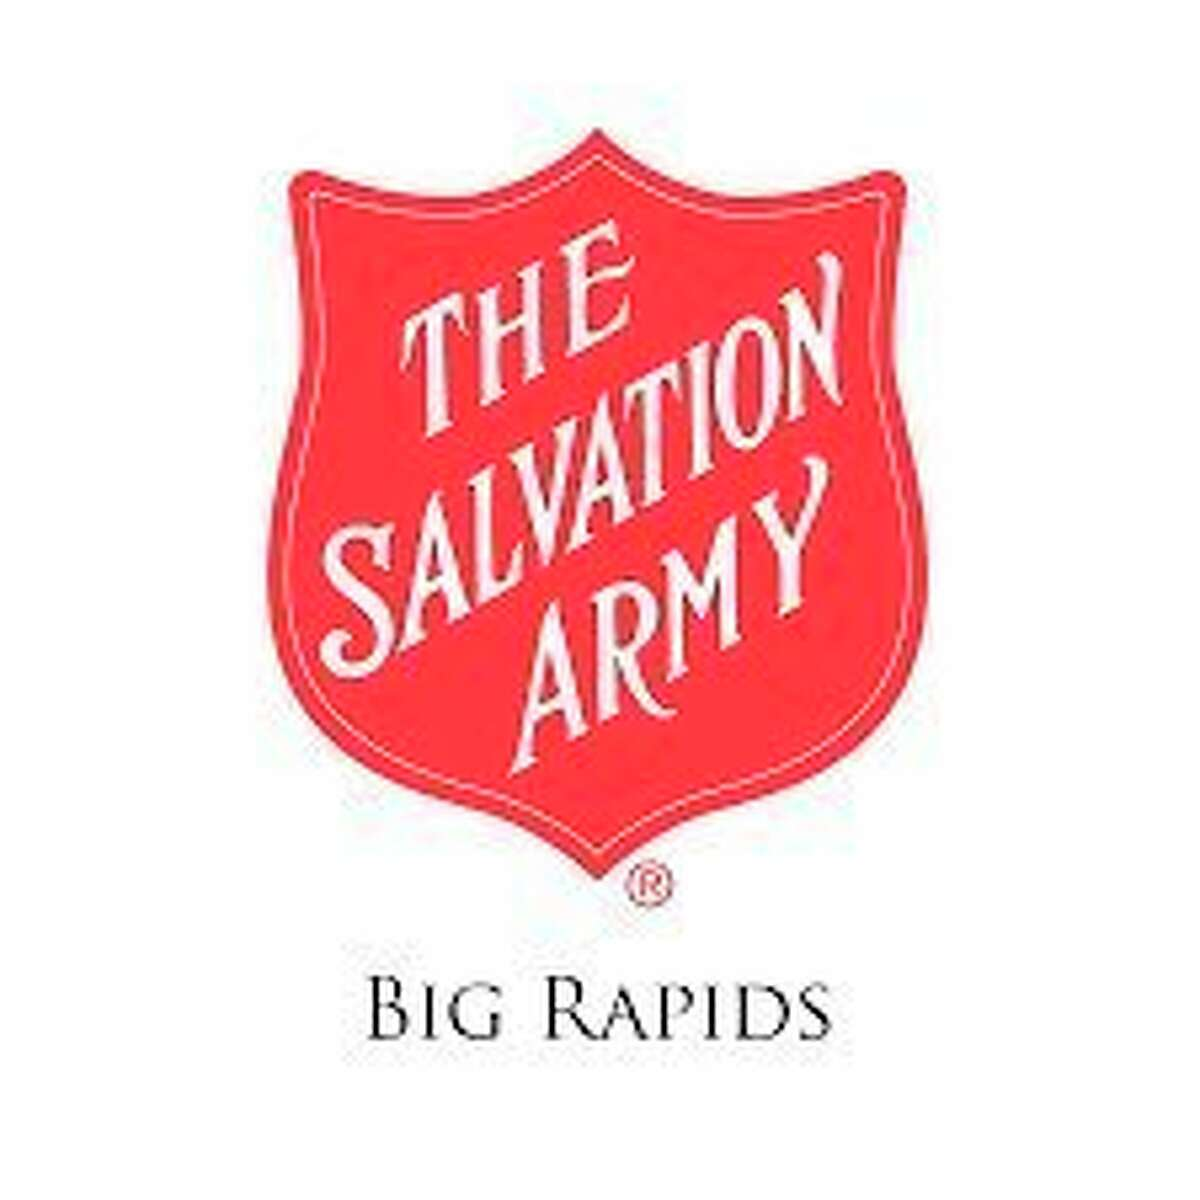 In an effort to help struggling parents in need, The Salvation Army is implementing a diaper giveaway program. (Courtesy photo)